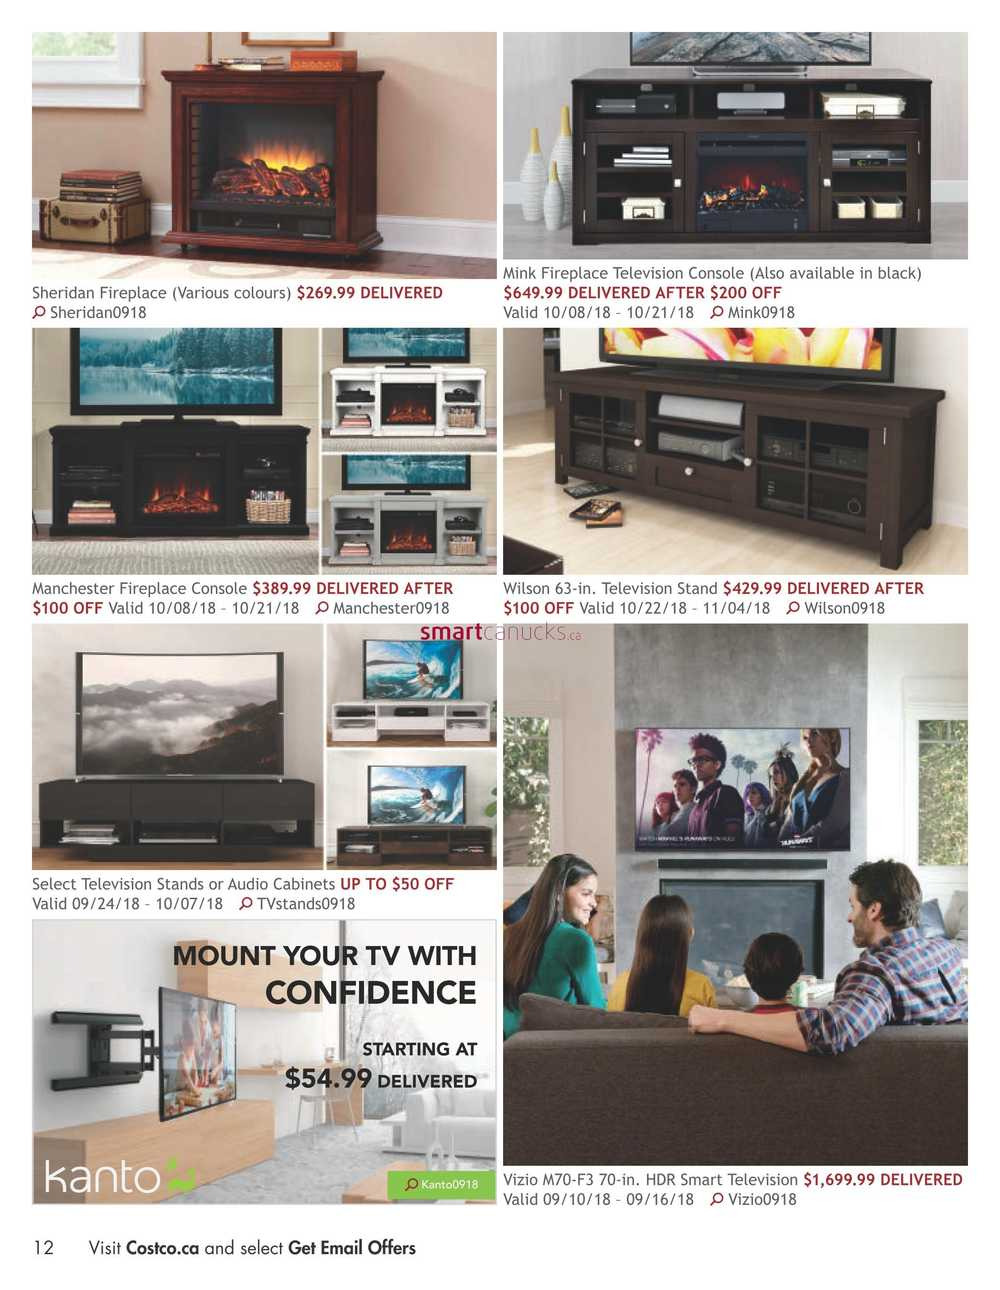 costco online catalogue september 1 to october 311 12